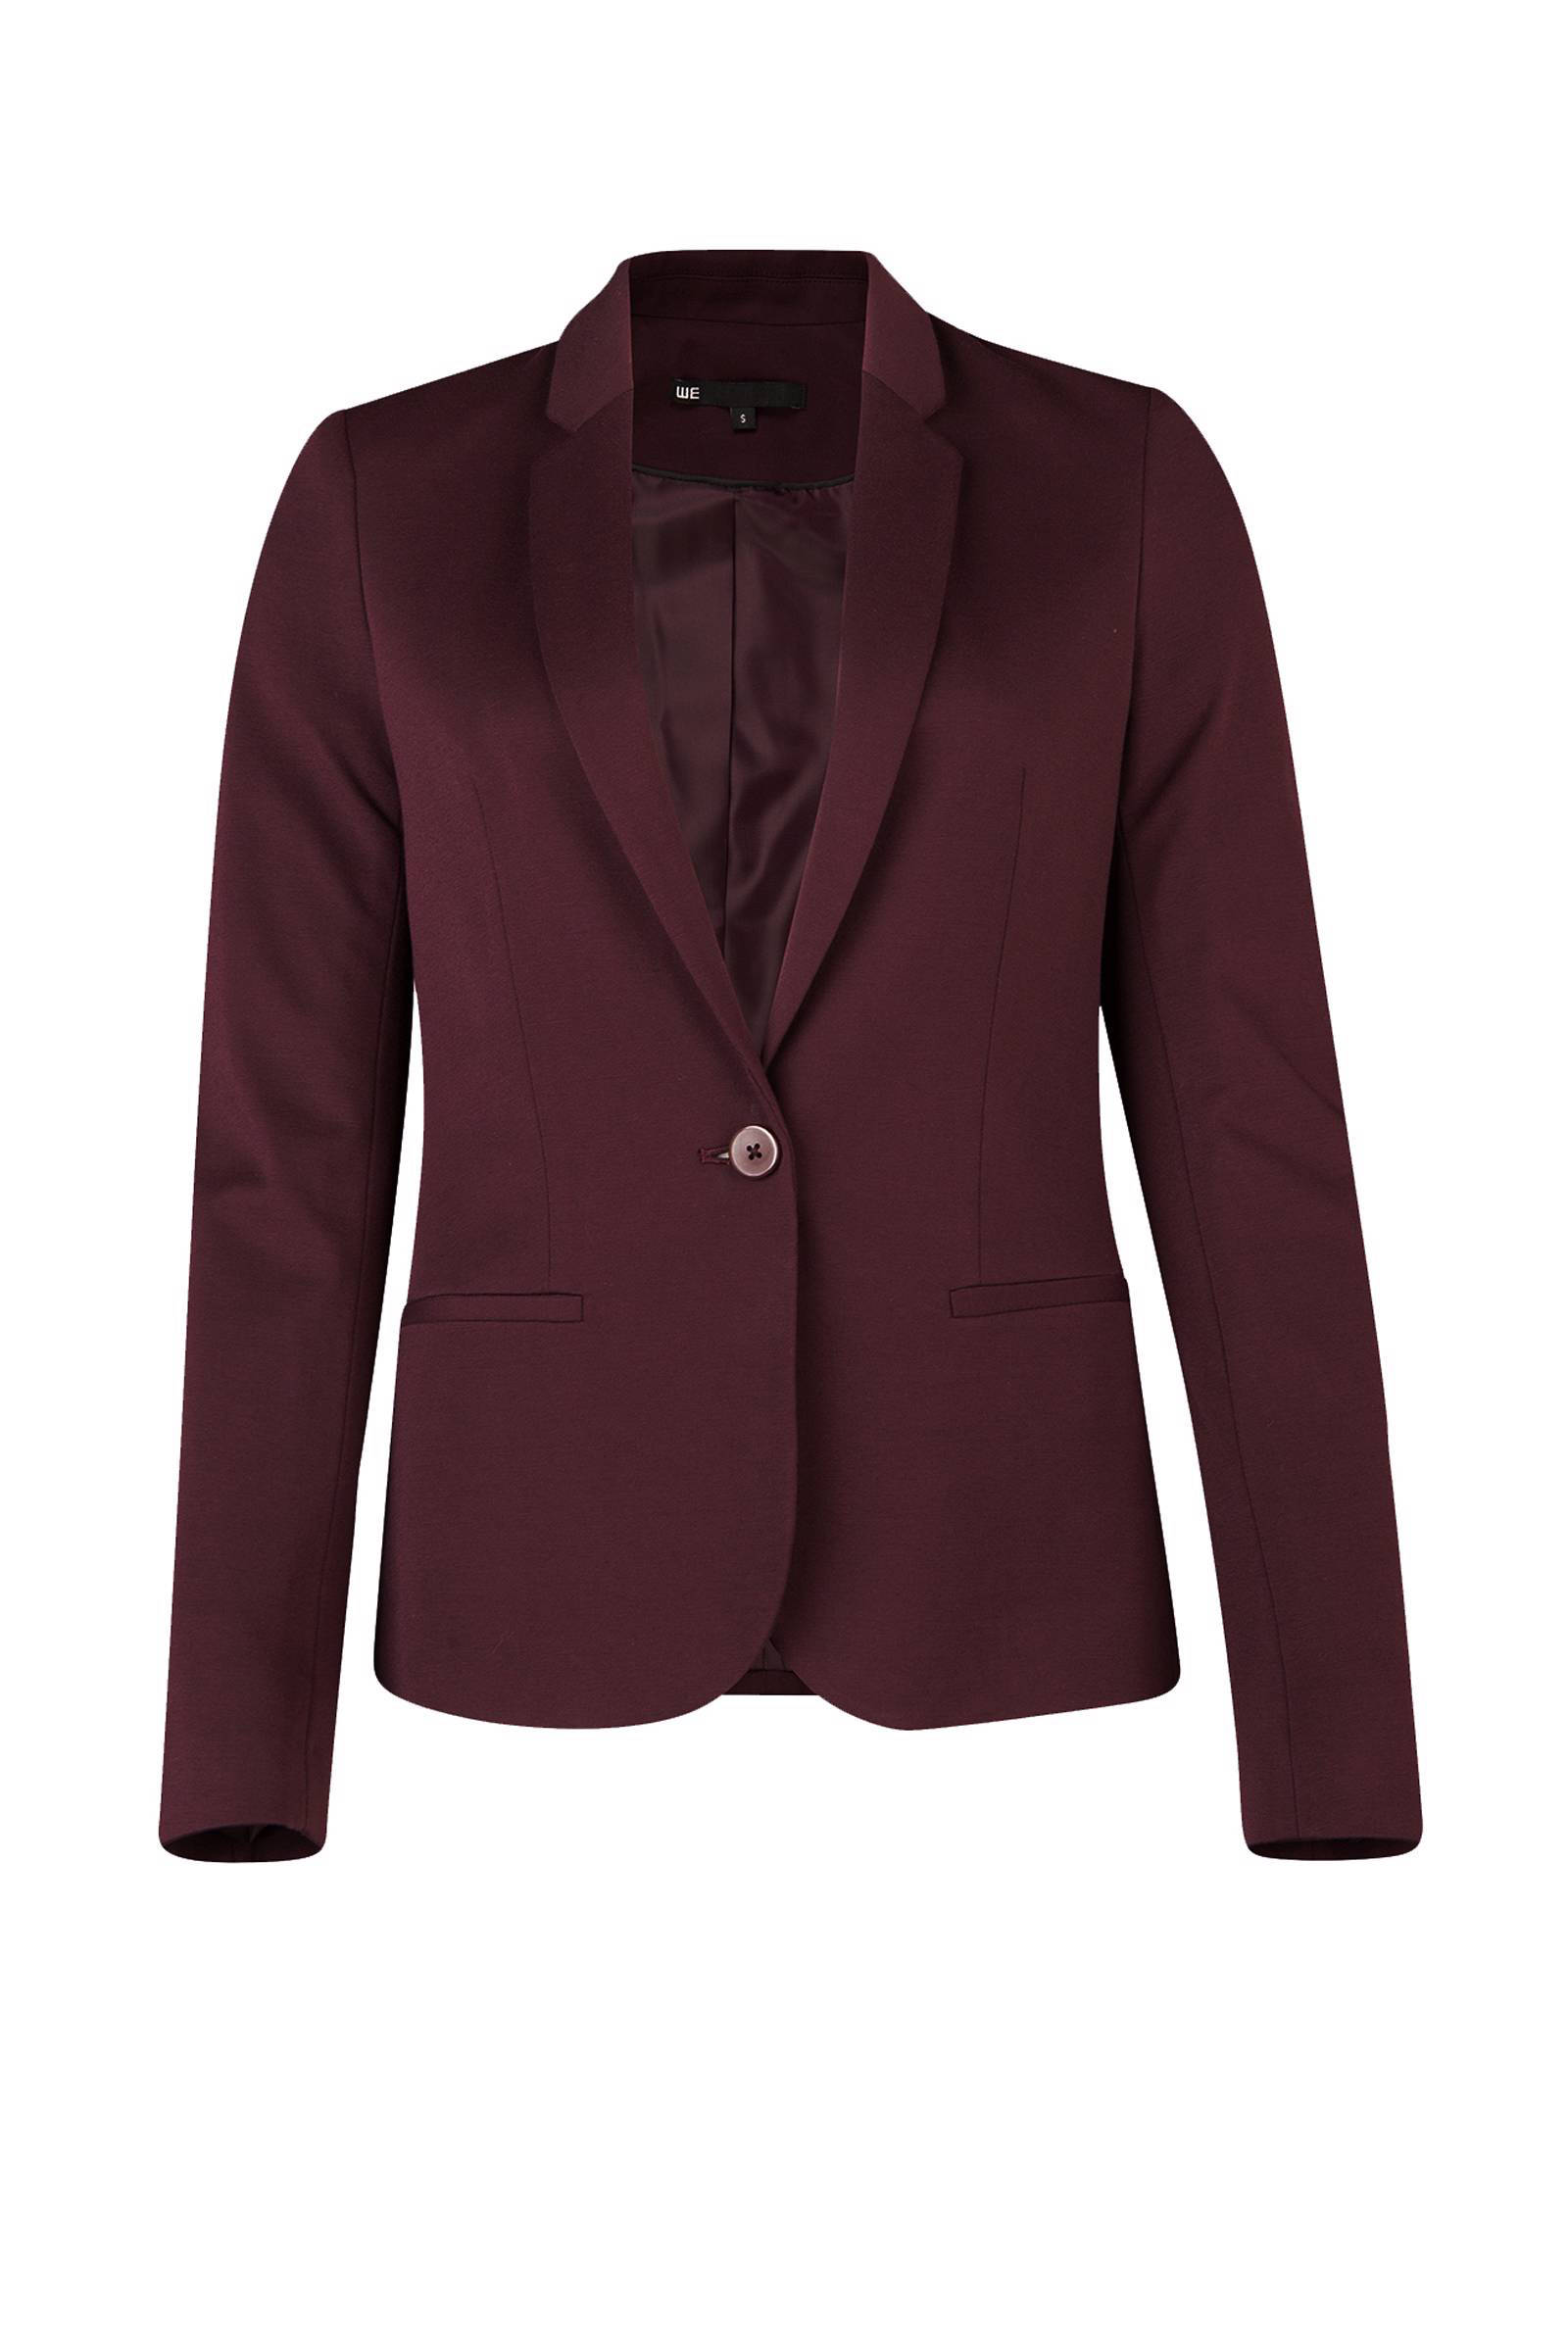 WE Fashion jersey blazer donkerpaars | wehkamp